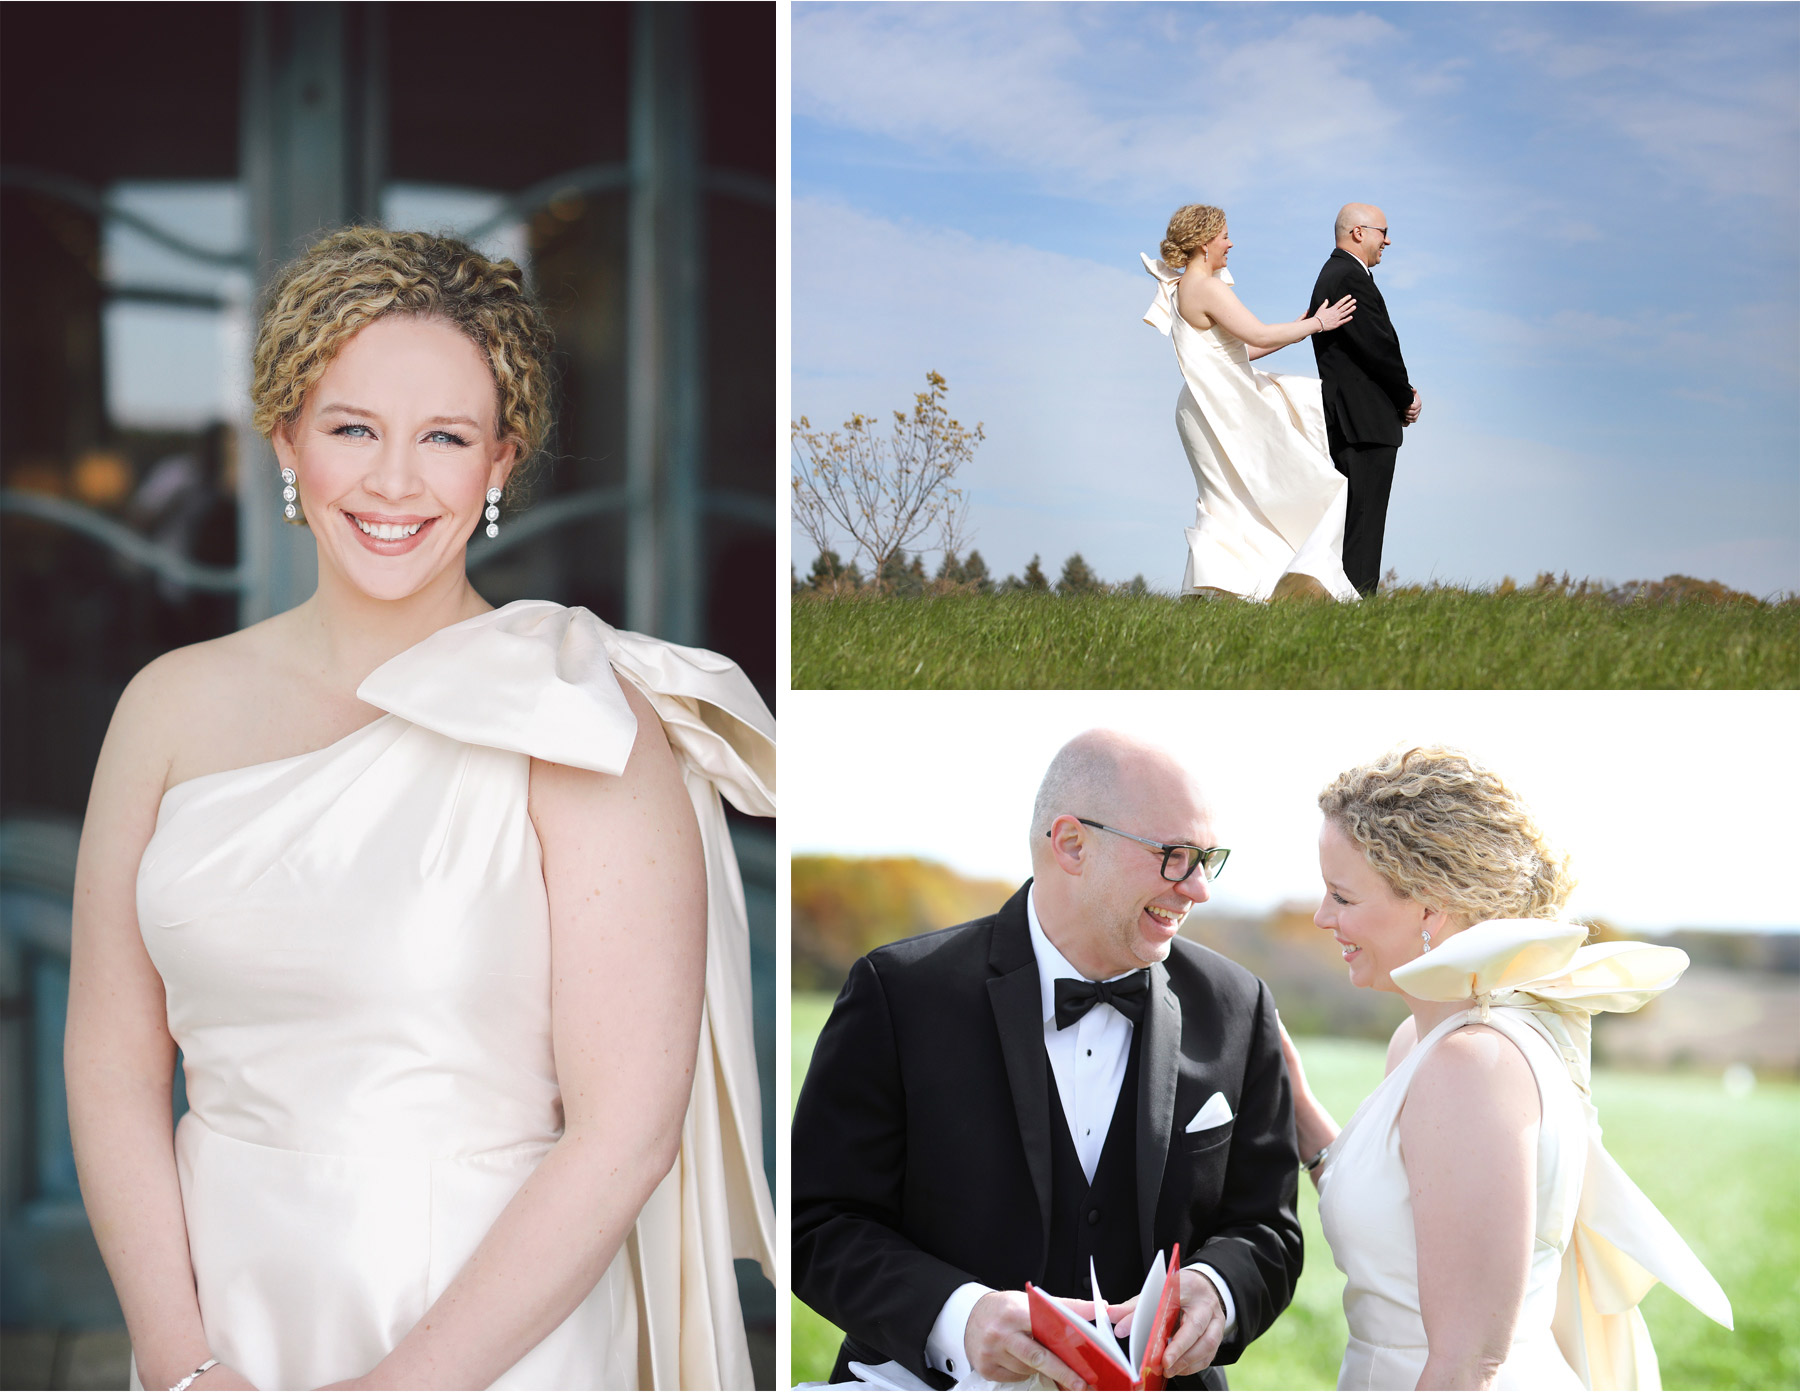 06-Minneapolis-Minnesota-Wedding-Photography-by-Vick-Photography-Bavaria-Downs-First-Look-Gift-Exchange-Jill-and-David.jpg